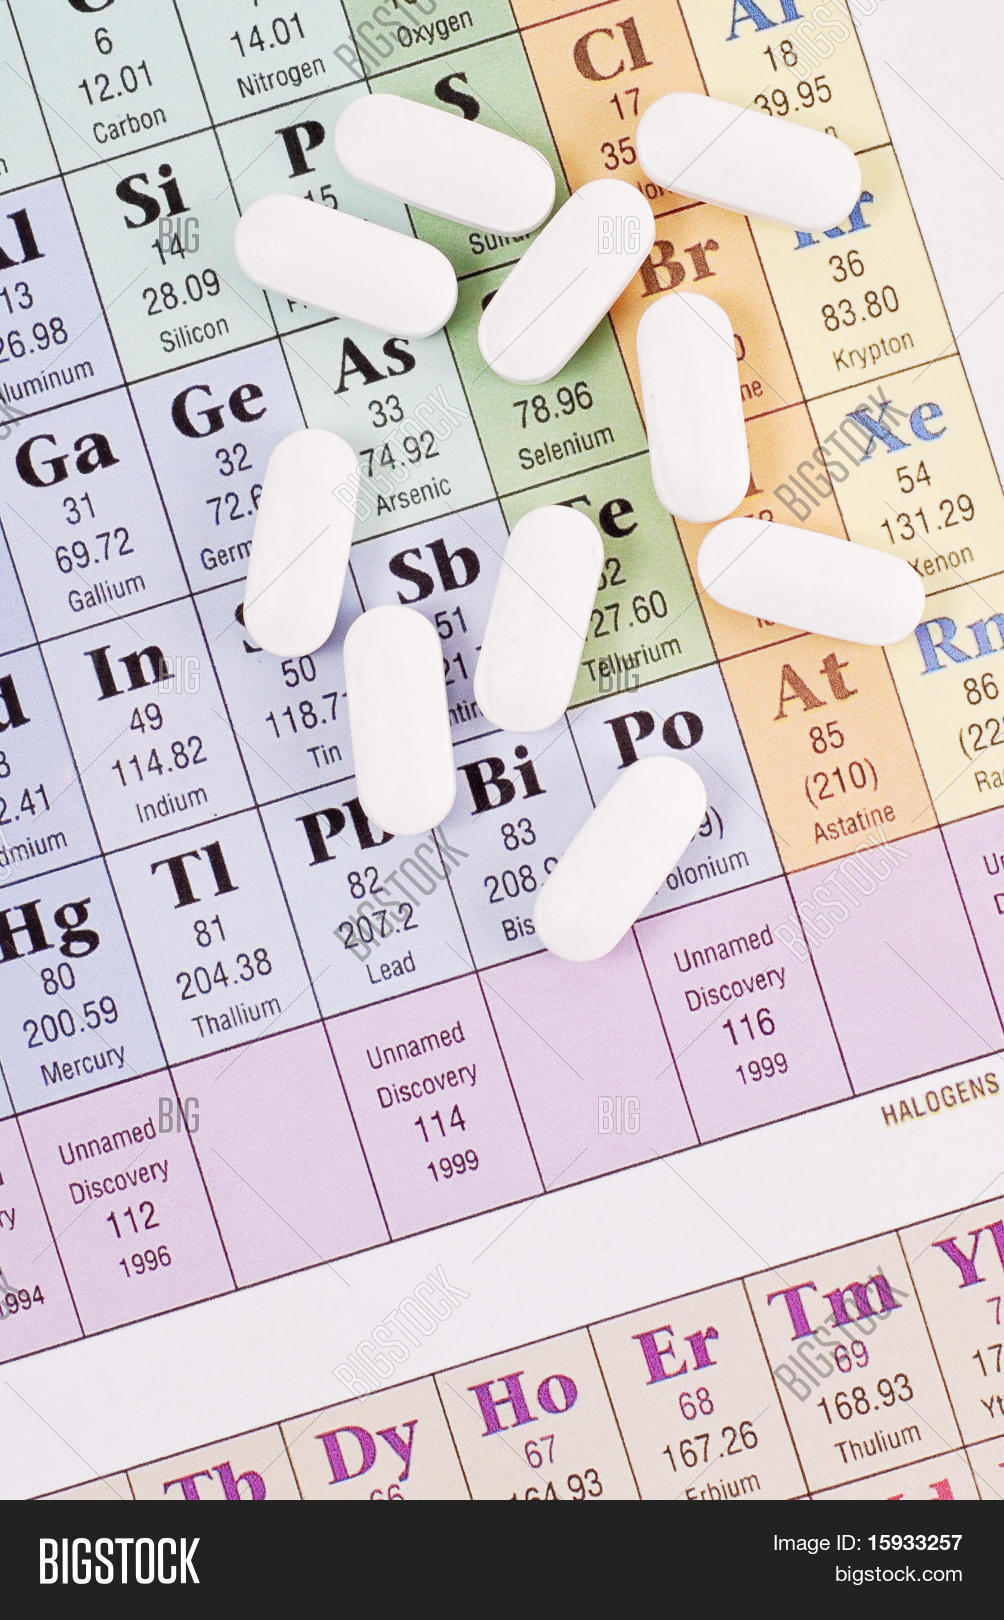 advanced,advancement,analysis,antidote,atomic,atoms,background,breakthrough,calcium,carbon,chart,chemical,chemistry,class,college,compound,concept,course,cure,deficiency,discovery,disease,education,educational,element,elemental,experiment,field,human,iron,lab,medical,medicine,minerals,organic,oxygen,periodic,pharmaceutical,pharmacy,pills,research,science,scientific,scientist,semimetal,structure,study,supplement,test,theory,university,zinc